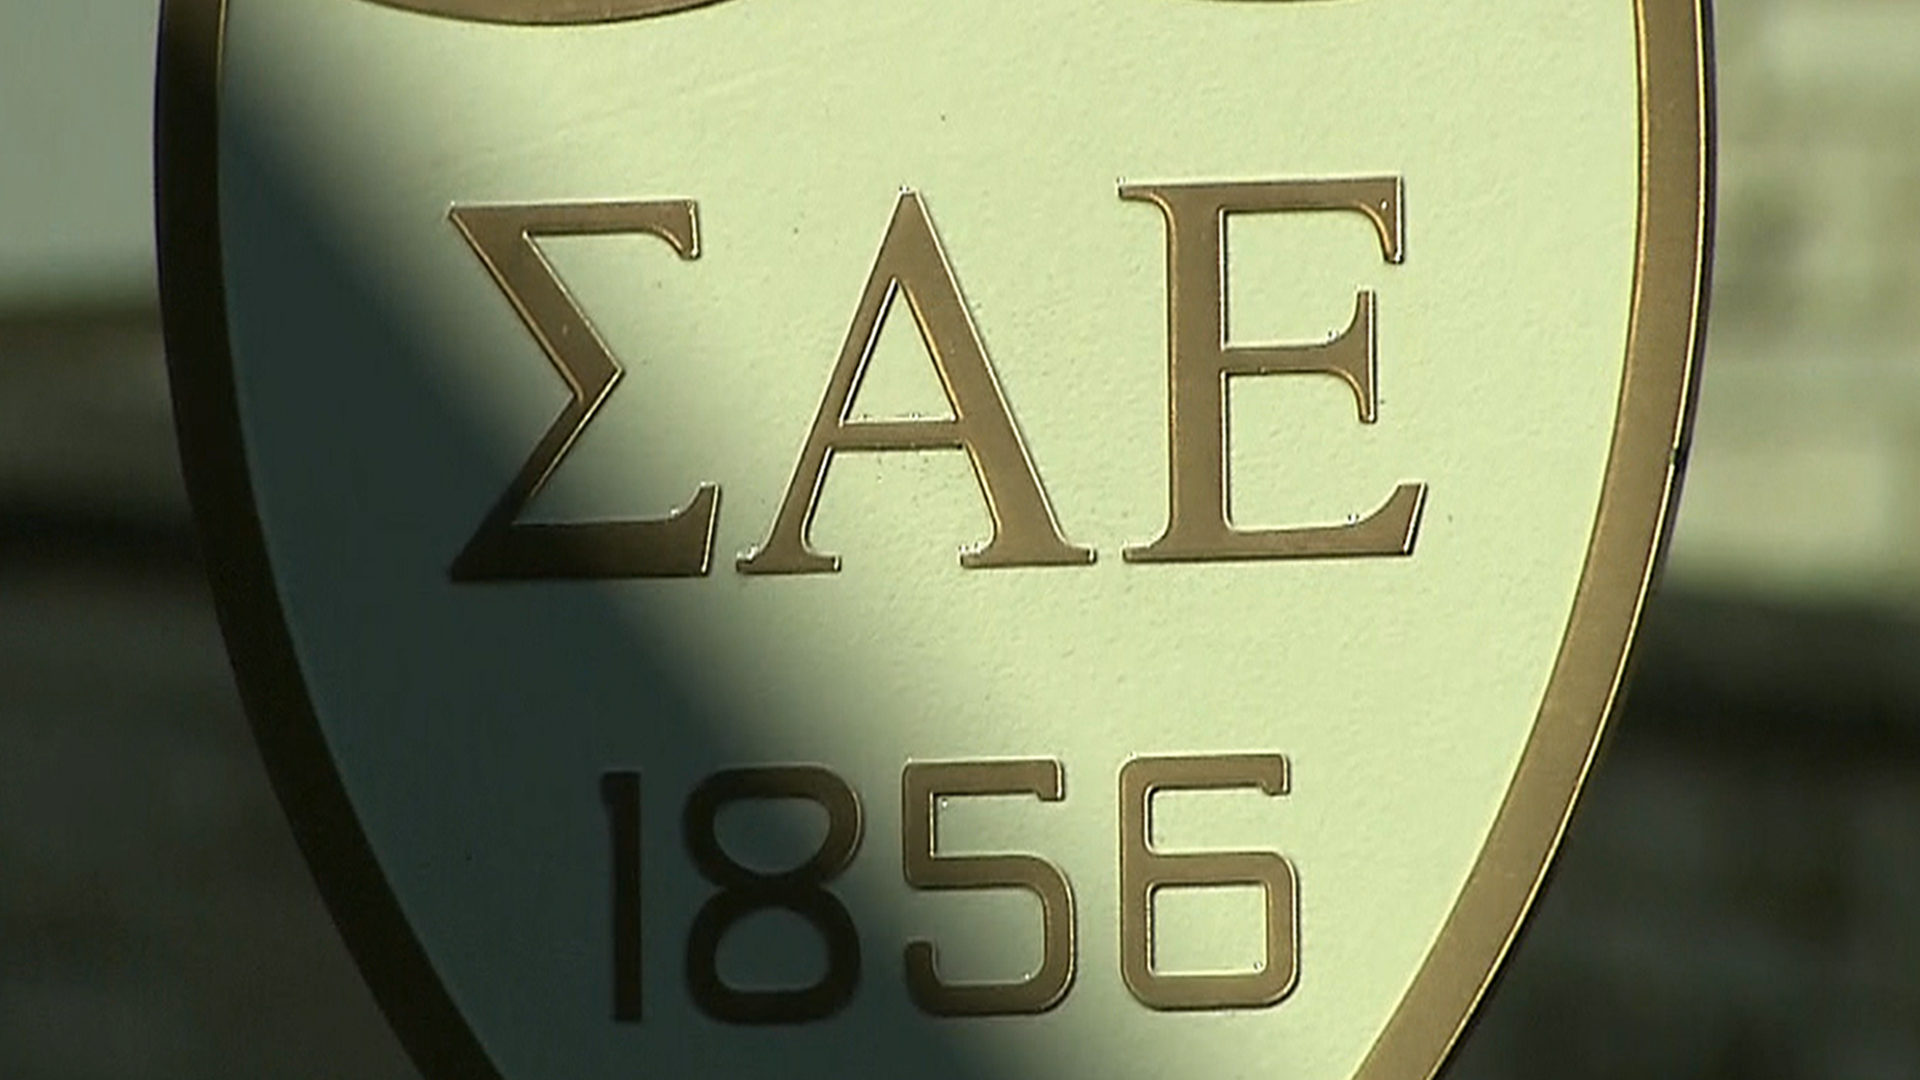 Sigma alpha epsilon has worried about frat house culture for years fraternity leaders horrible cancer entered ou chapter buycottarizona Images